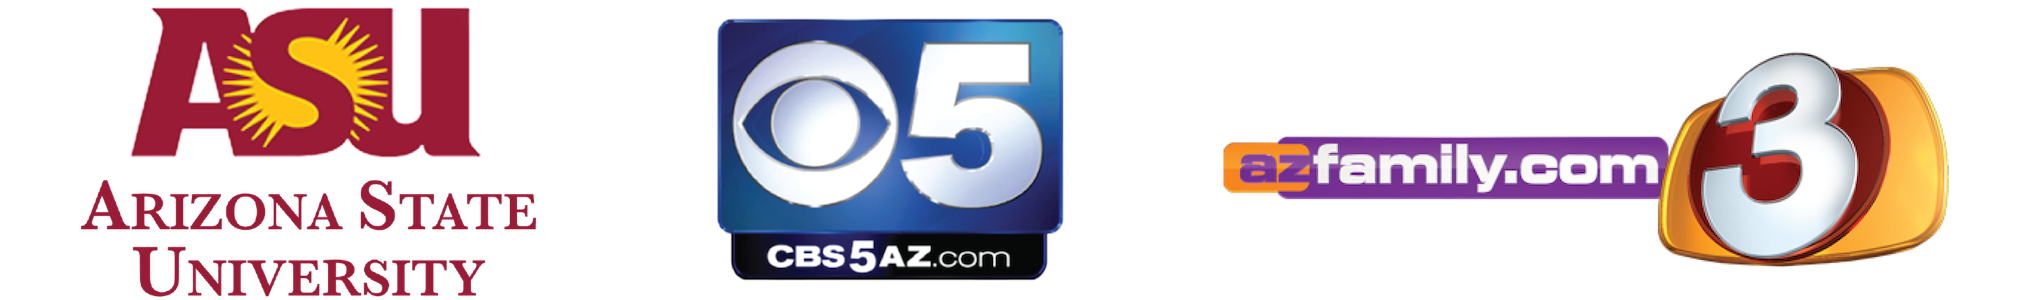 Featured By Arizona State University, CBS 5 AZ, and AZ Family 3